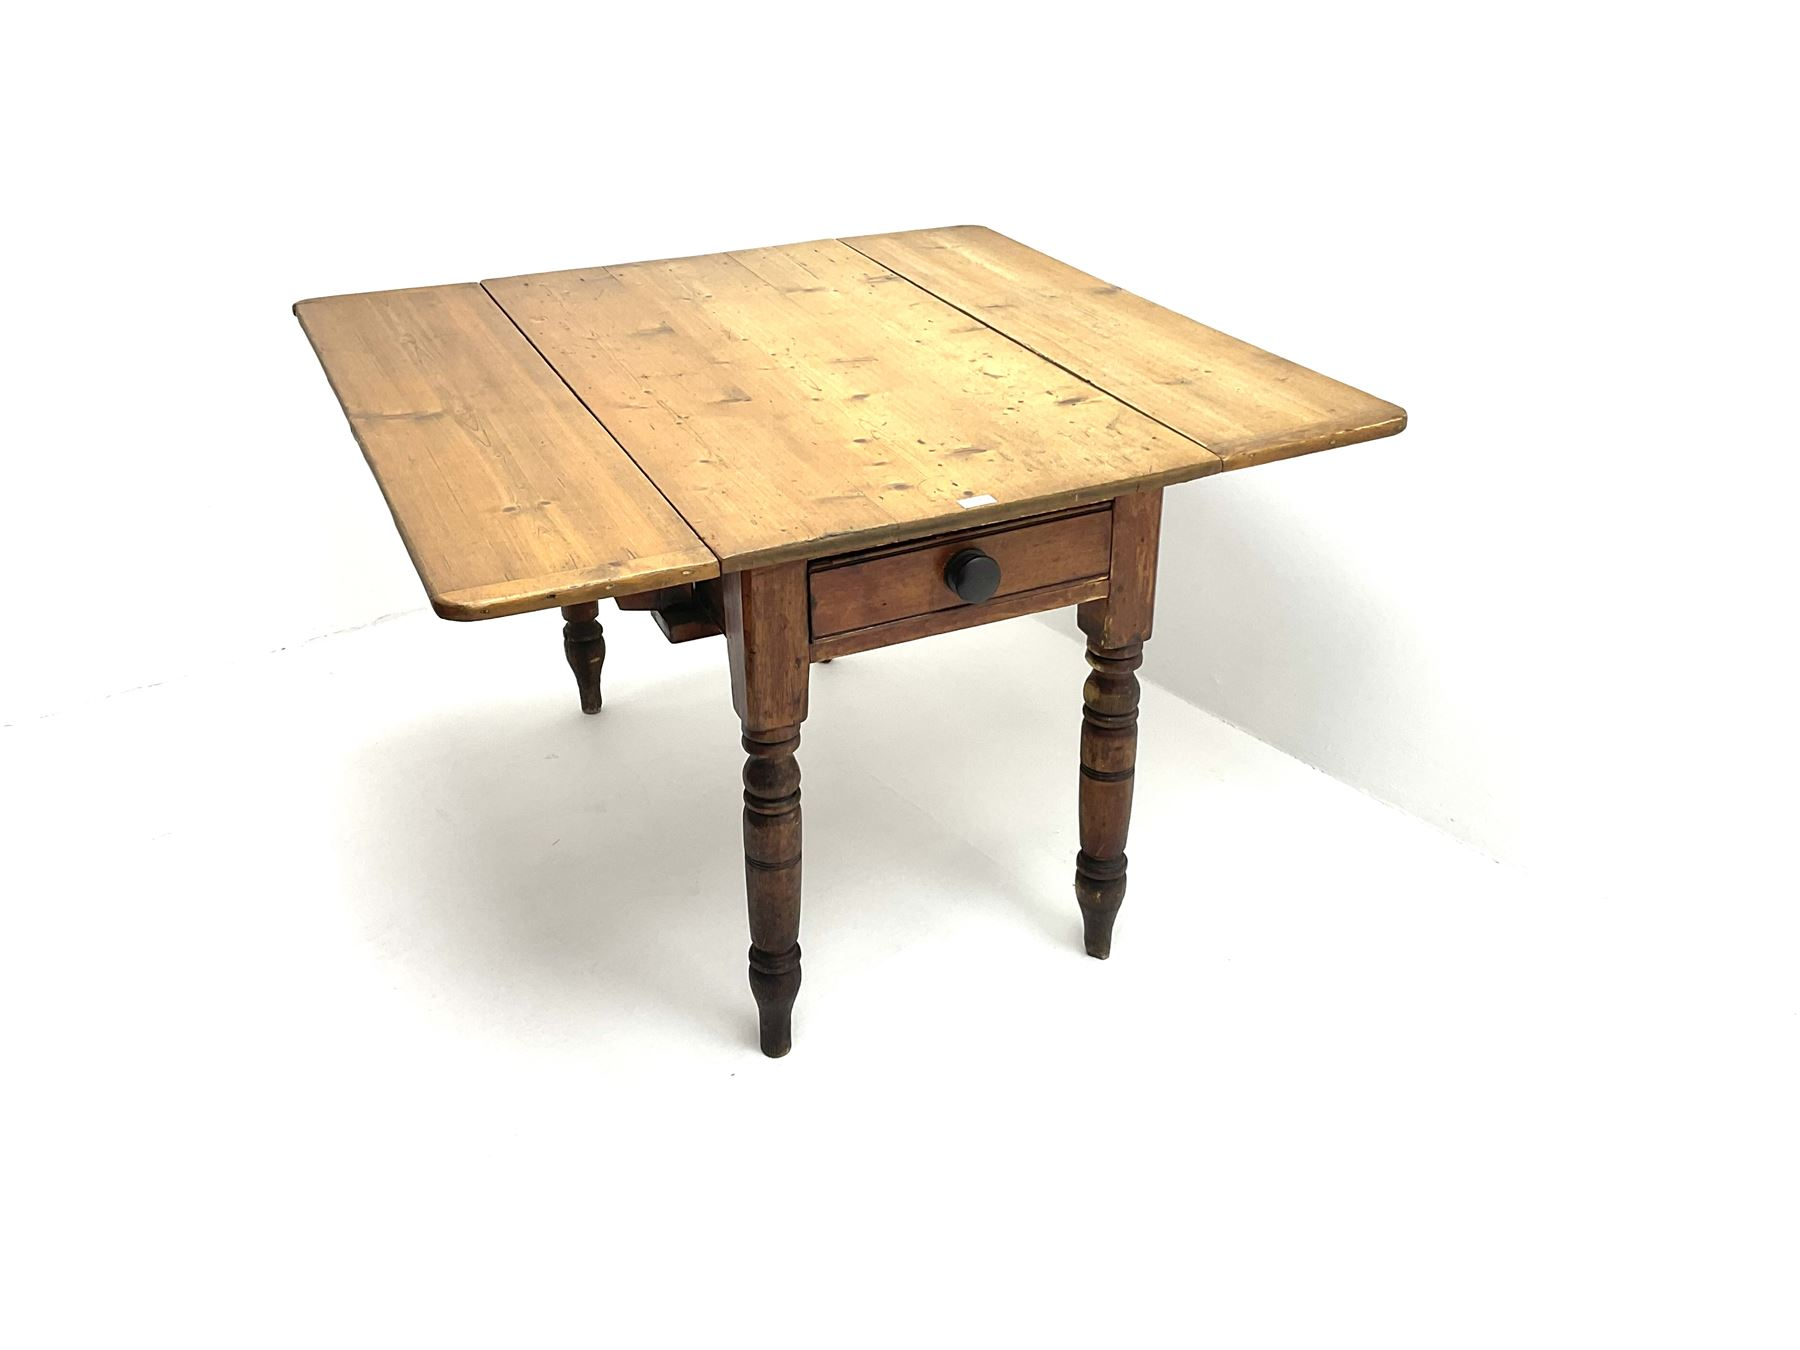 Victorian stained and polished pine drop leaf kitchen table - Image 2 of 4